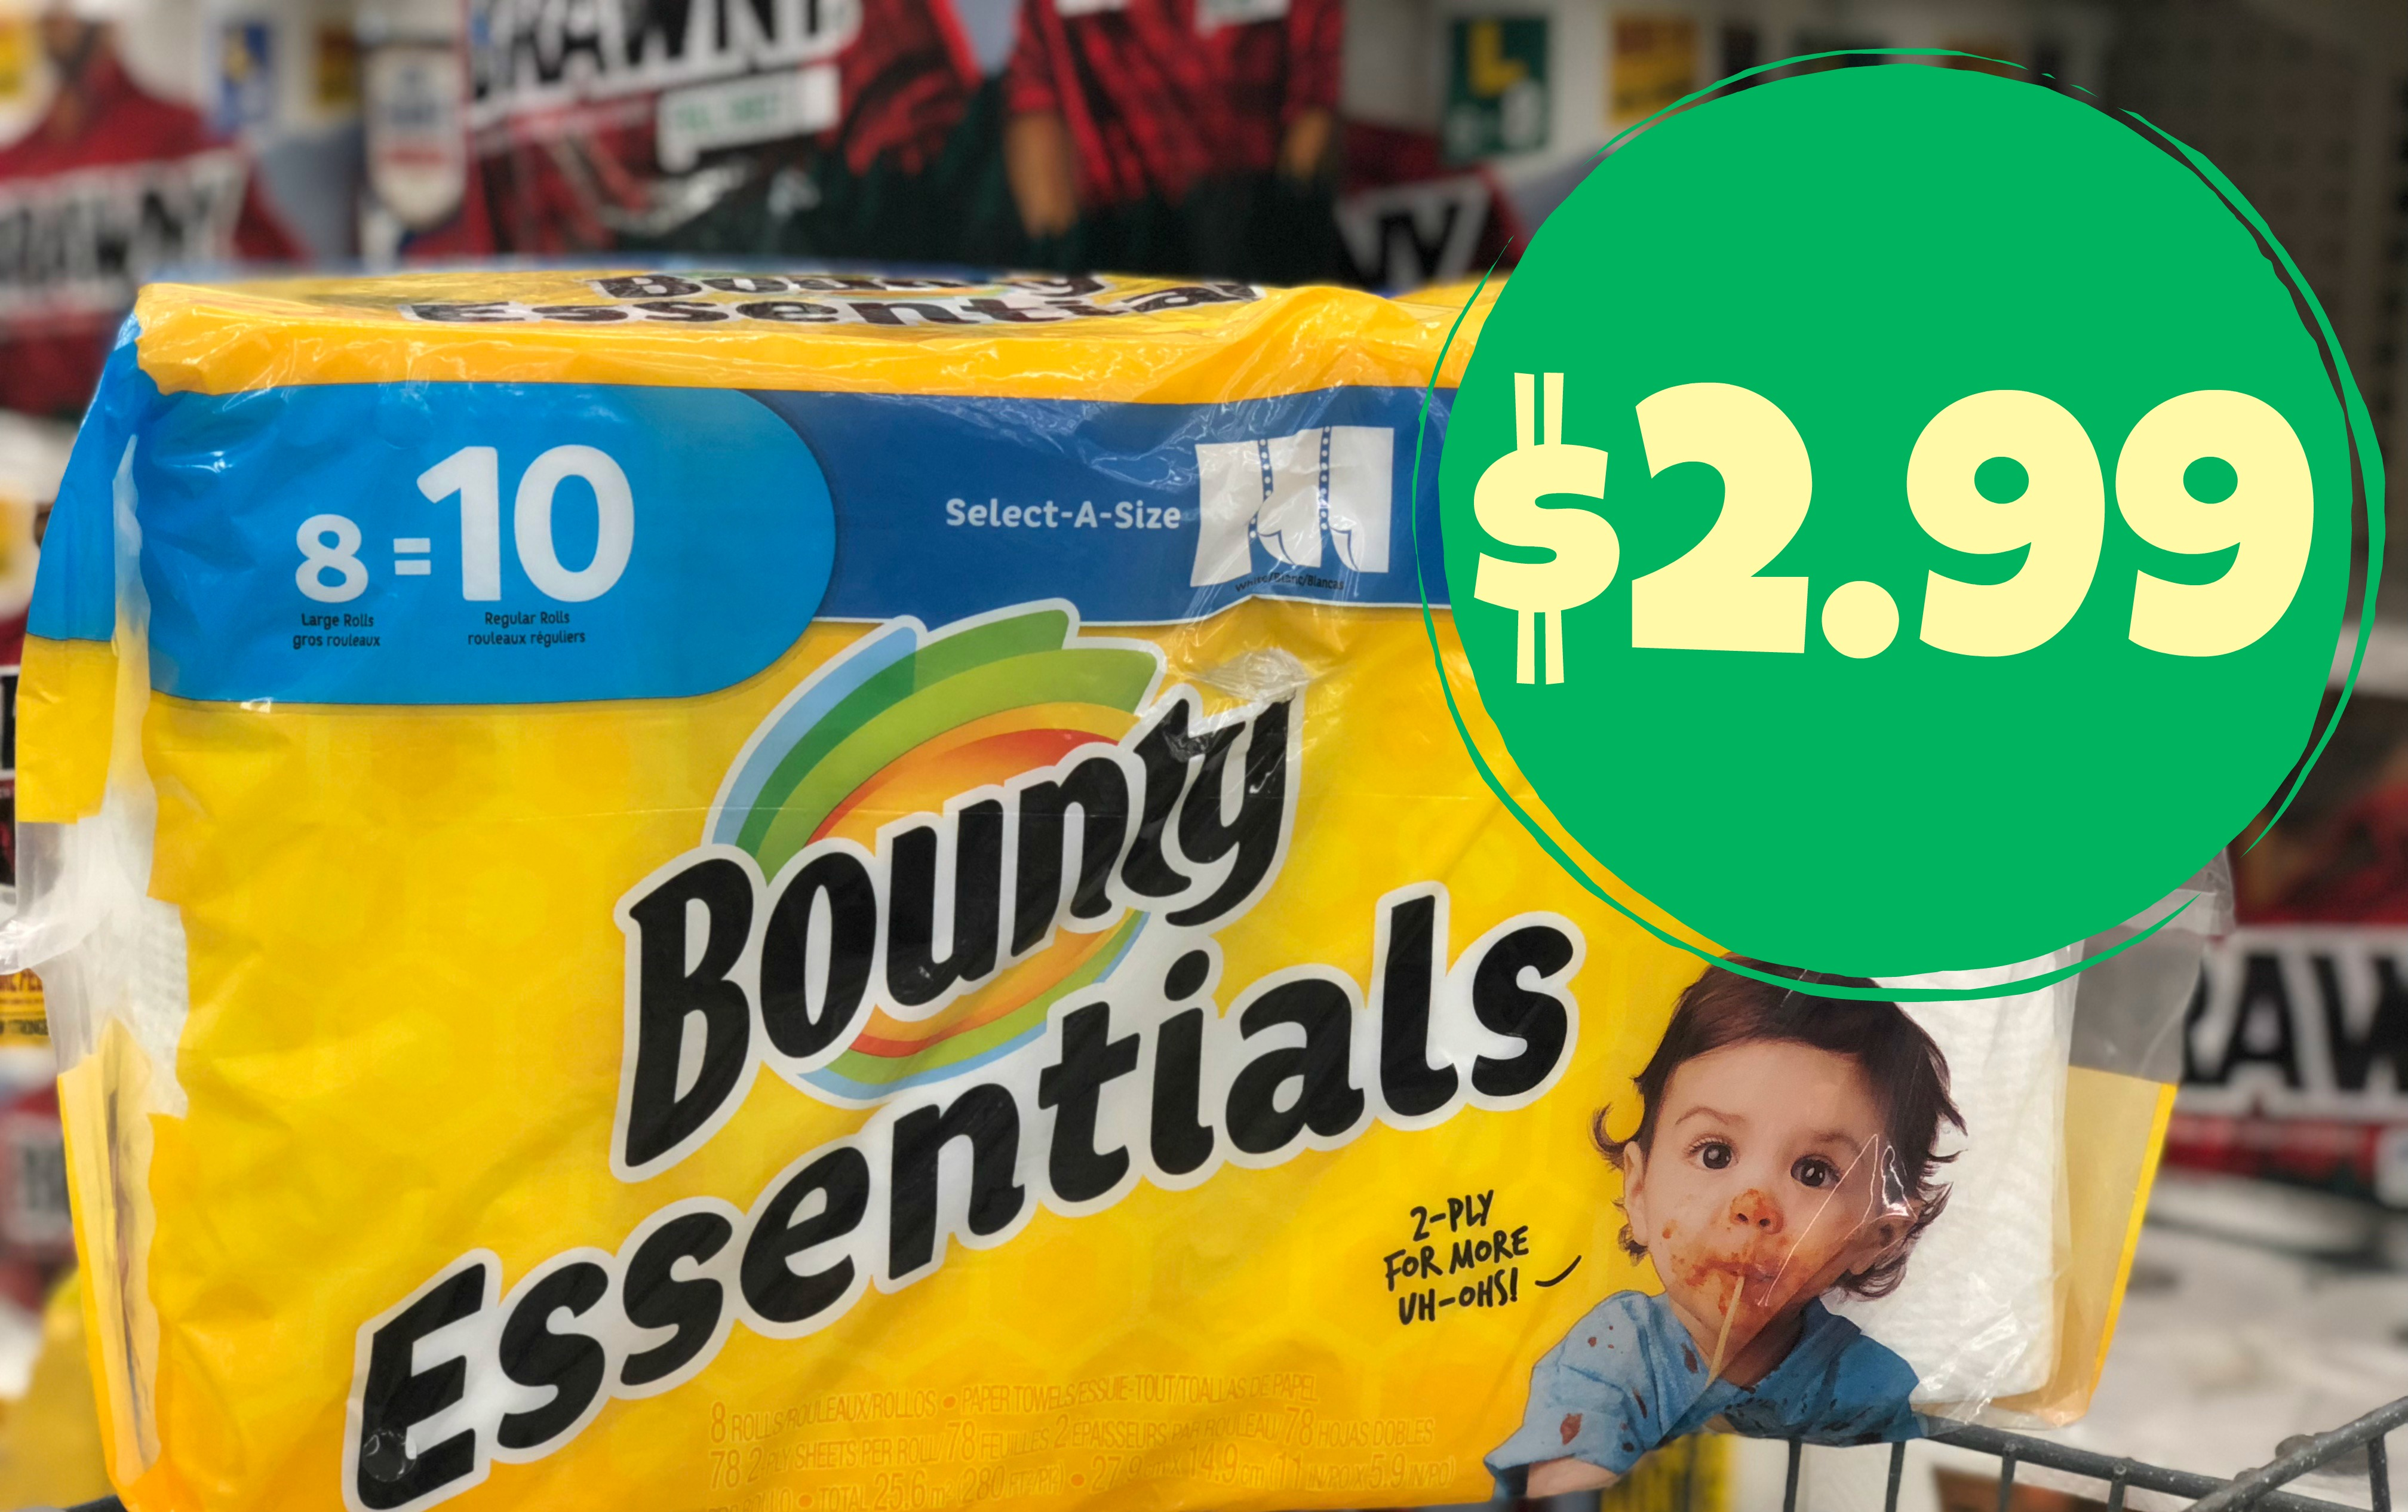 Enchanting Bounty Essential Paper Large Rolls I Have T You About Bounty Paper Towels A Couple Times Green Packis My But If You Could Get Some Bounty Essentialspaper Pay As Low As baby Essentials By Catalina